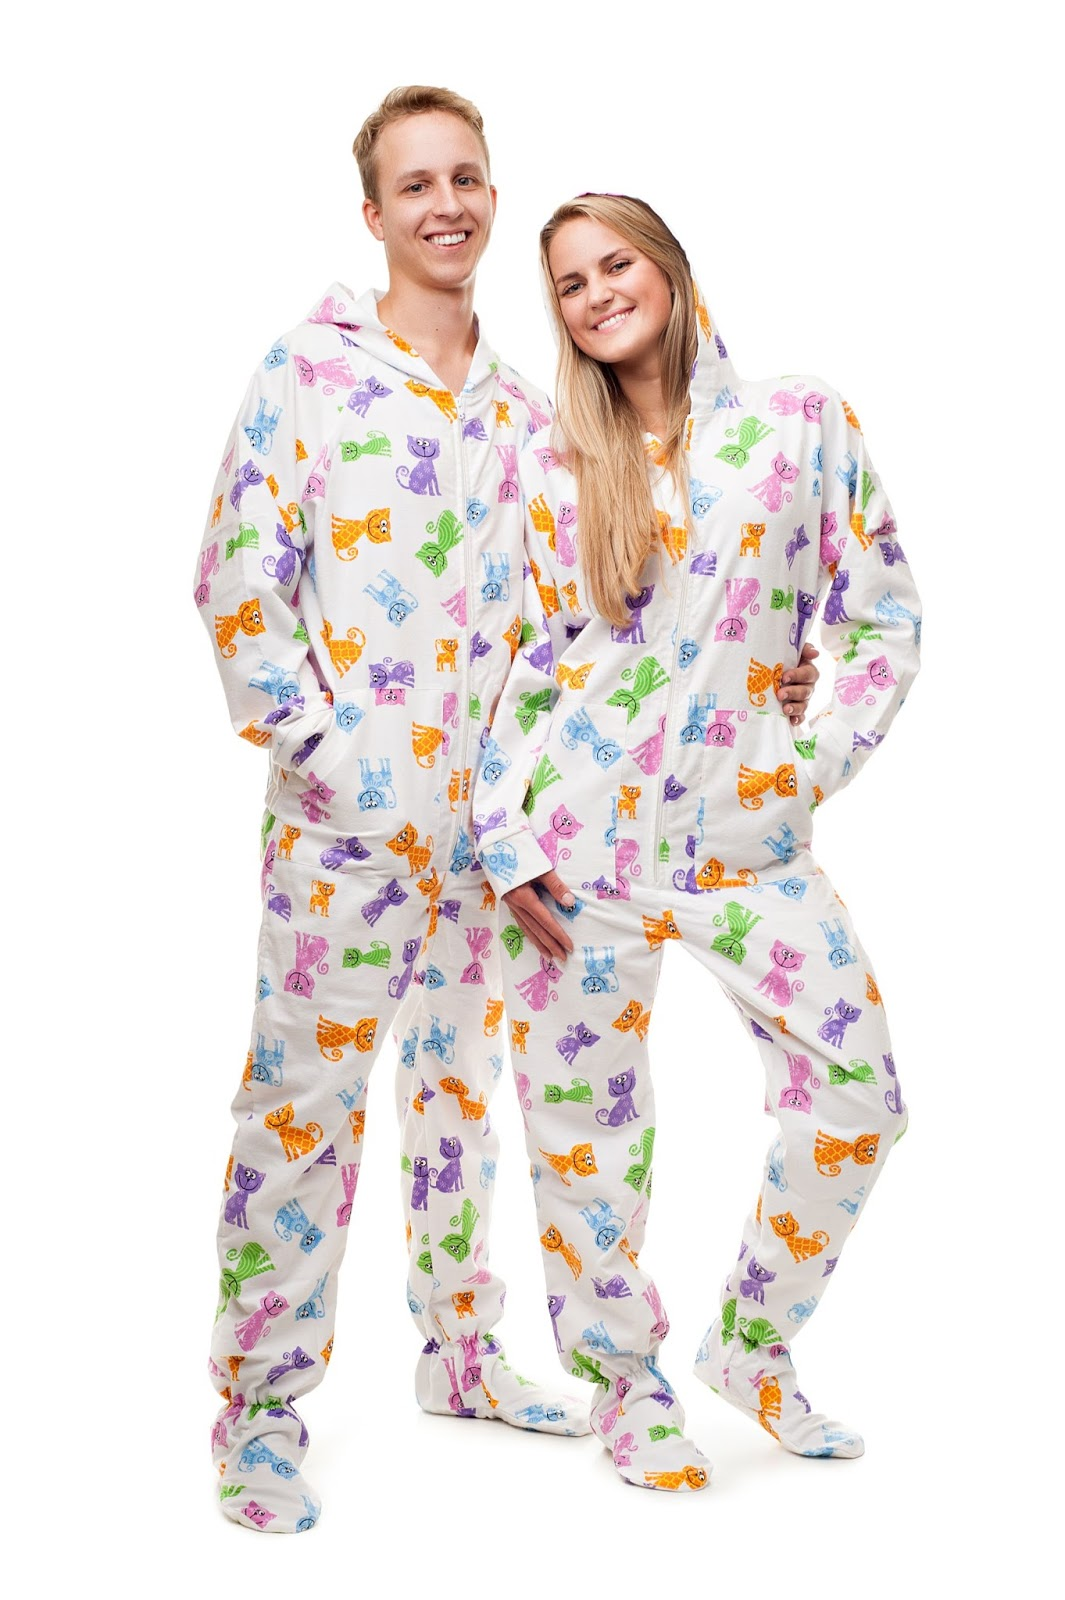 0a24c4cd0a ... is upon us and it is always difficult to find a unique gift idea. What  would be a unique Christmas Gift Idea for 2015  Kajamaz Adult Footie Pajamas  have ...